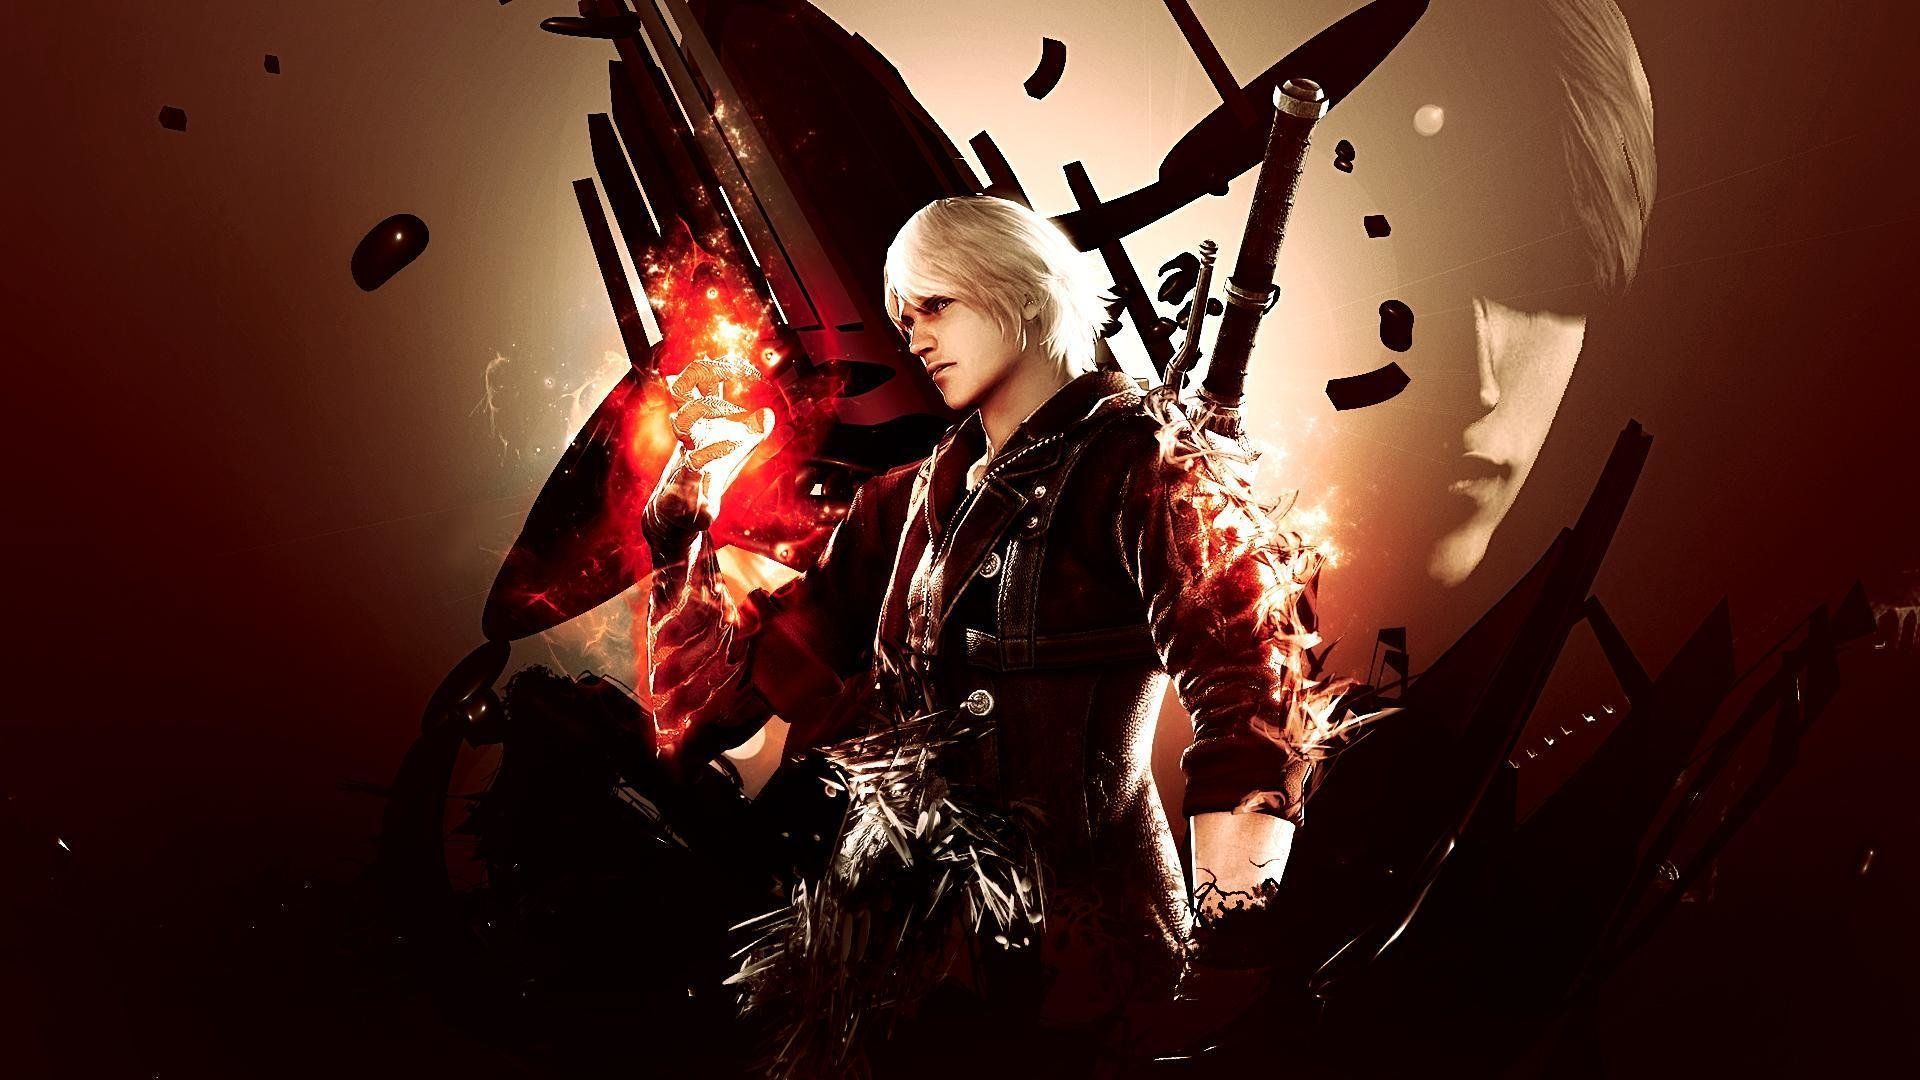 Awesome Devil May Cry 4 Free Background Id409916 For Hd